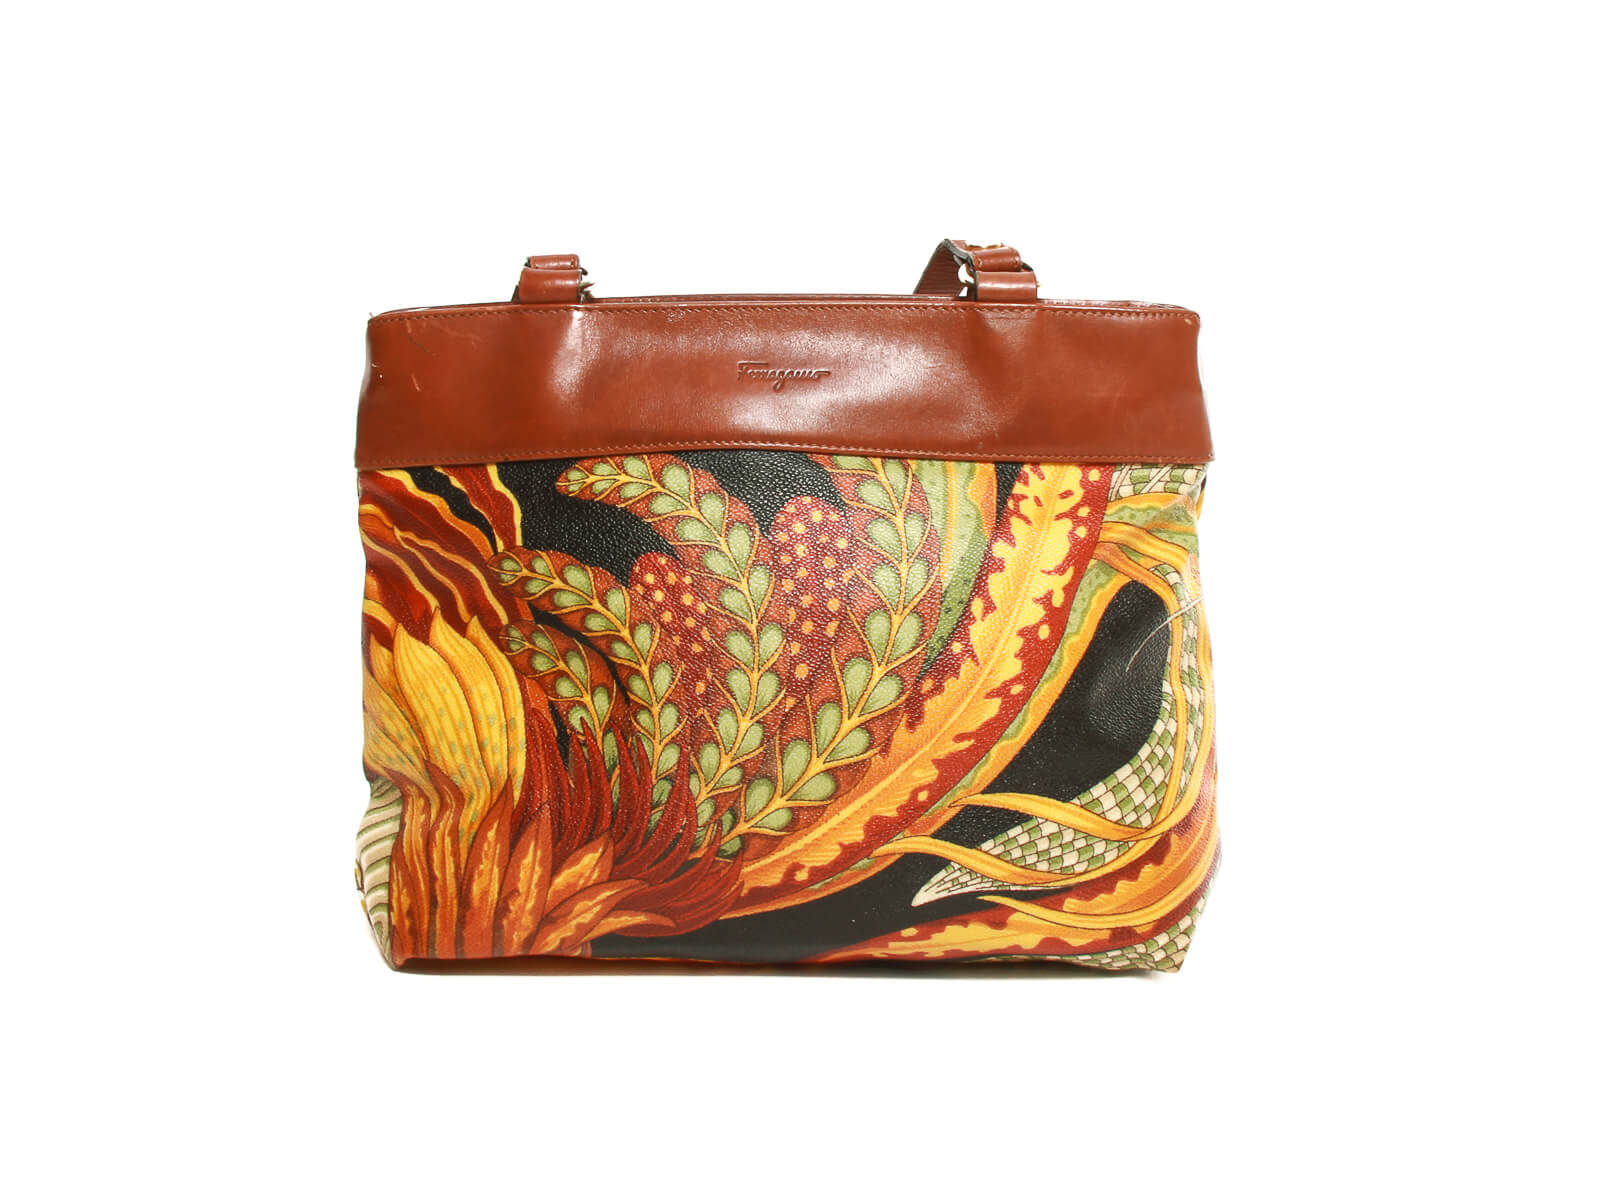 Authentic Salvatore Ferragamo Botanical pattern shoulder bag